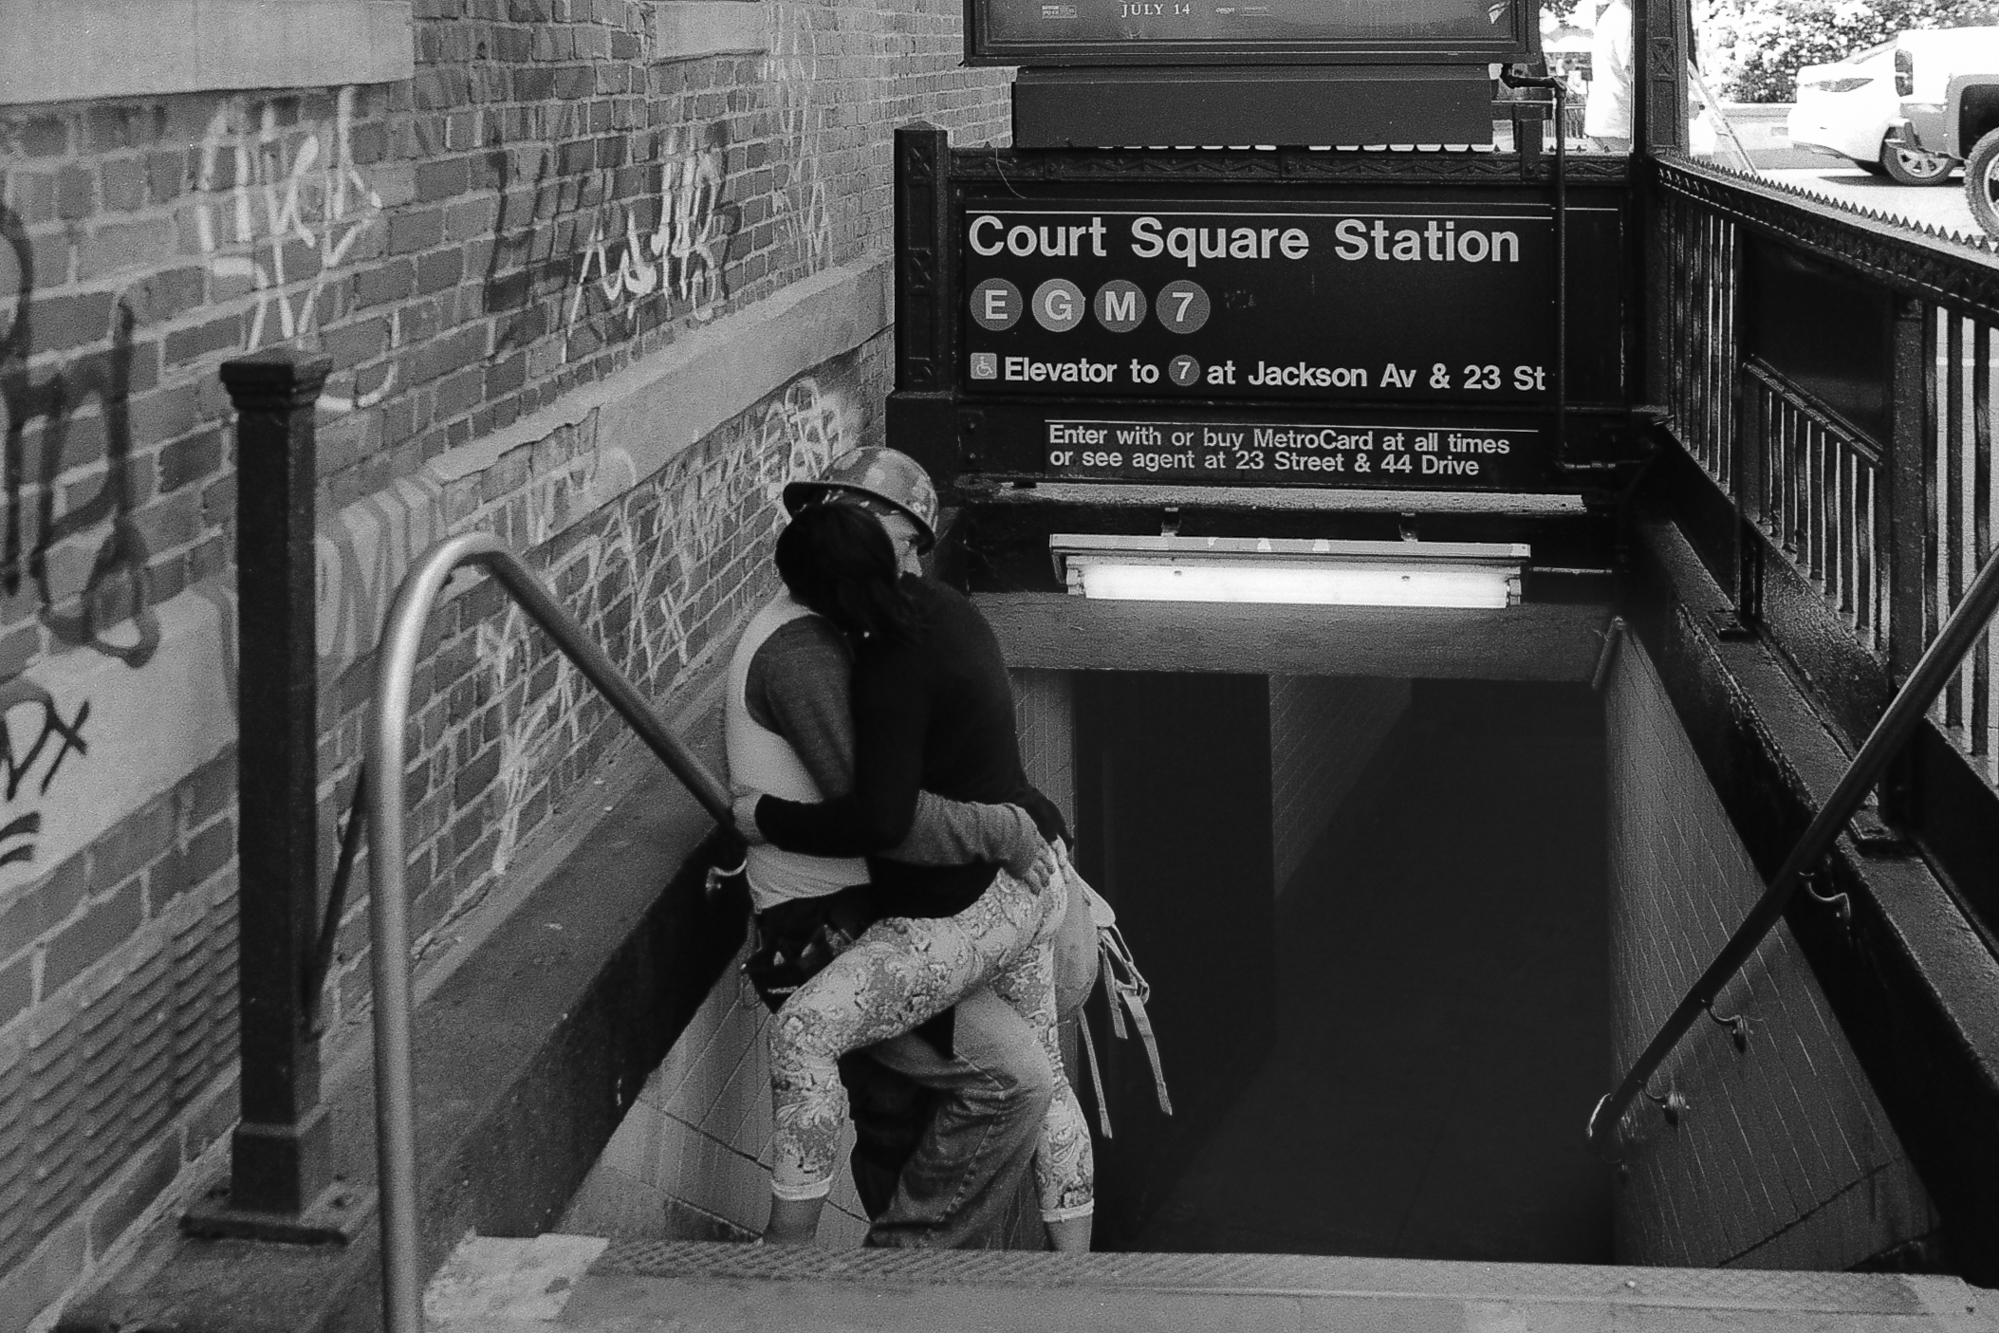 Court Square Queens, N.Y